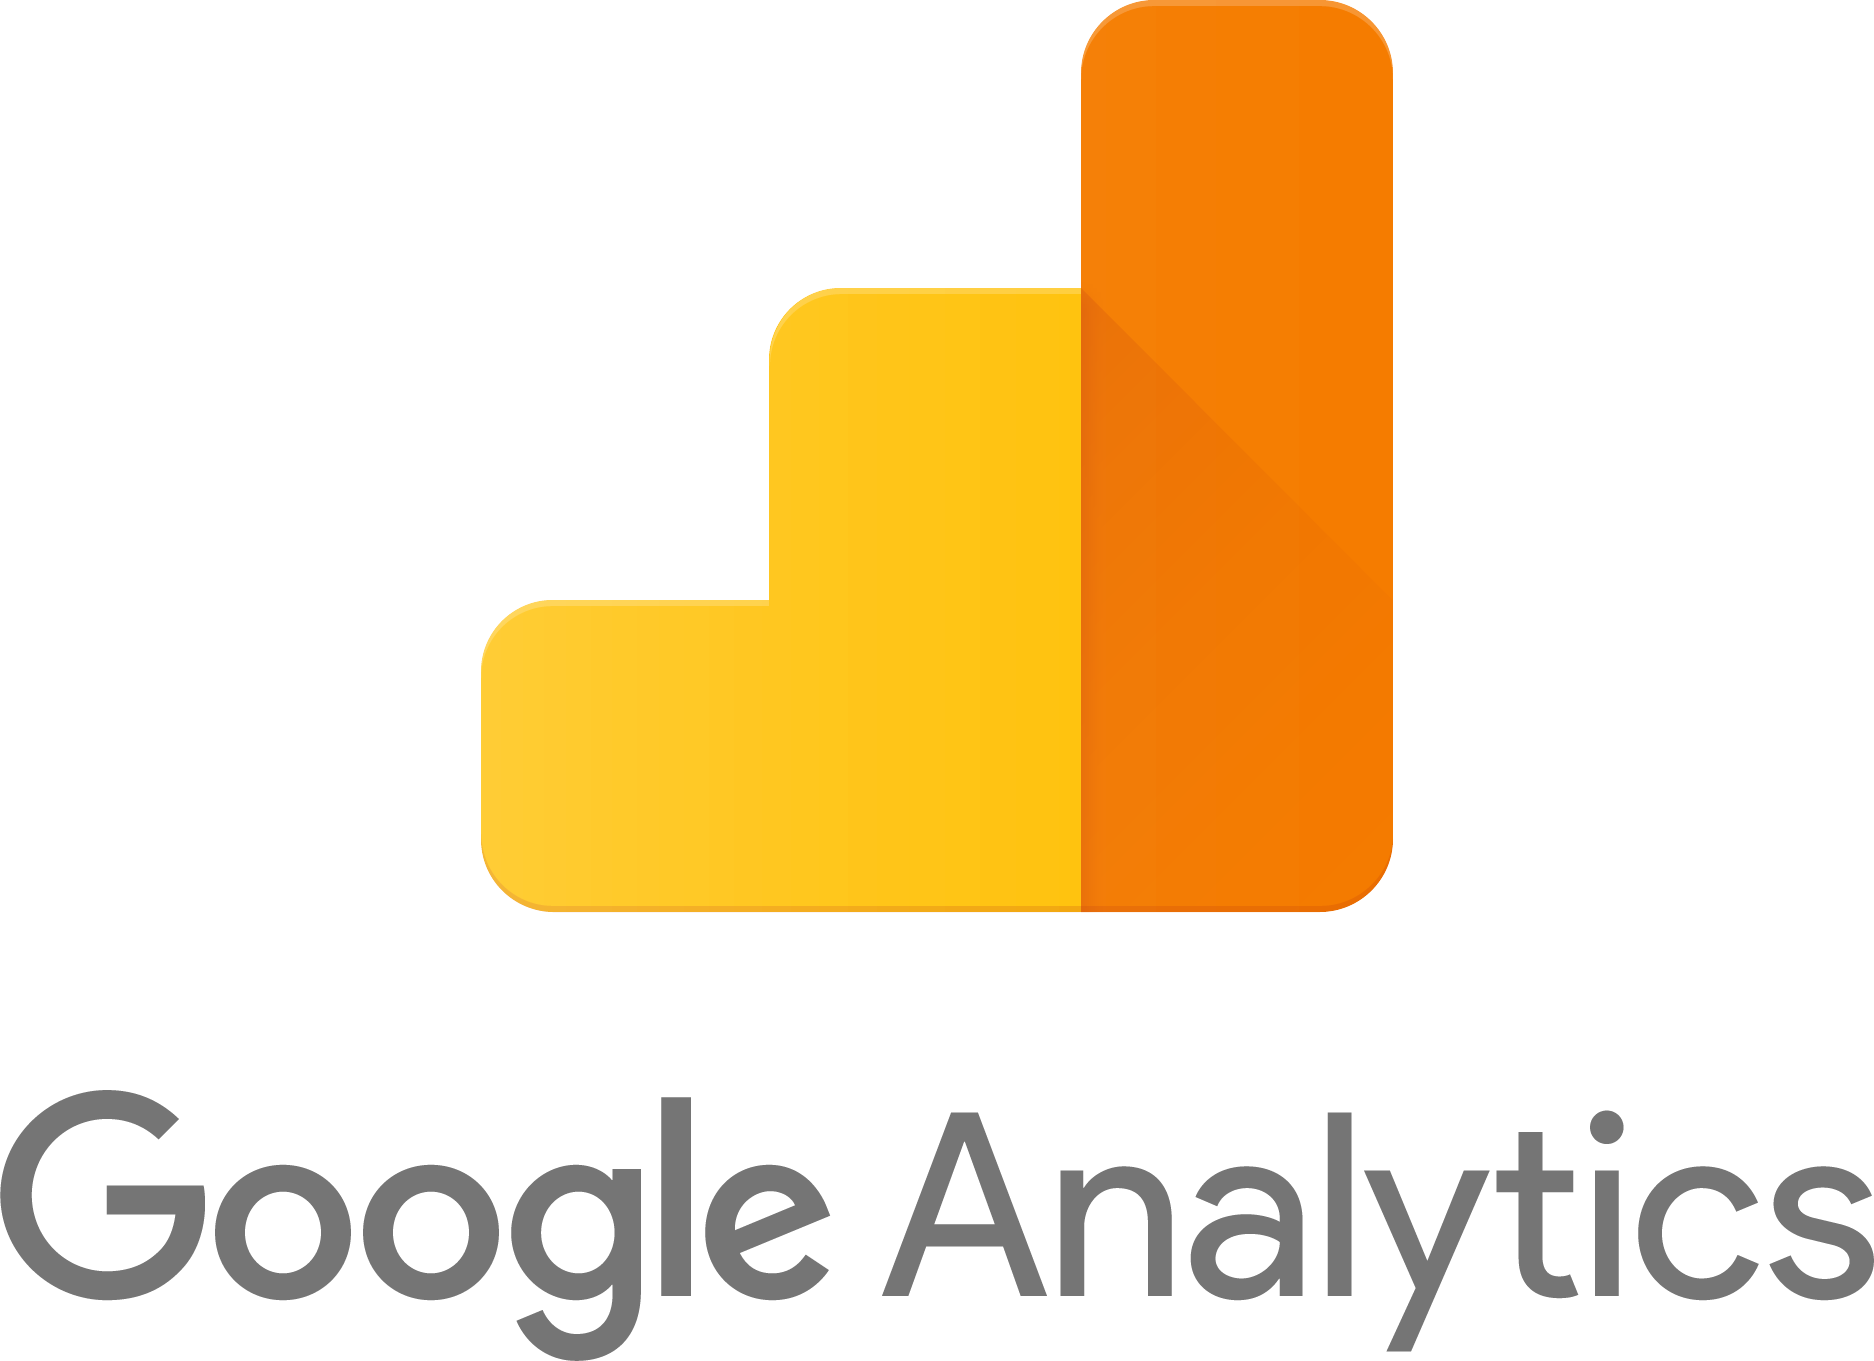 Google Analytics - Web Analytics Software : SaaSworthy.com